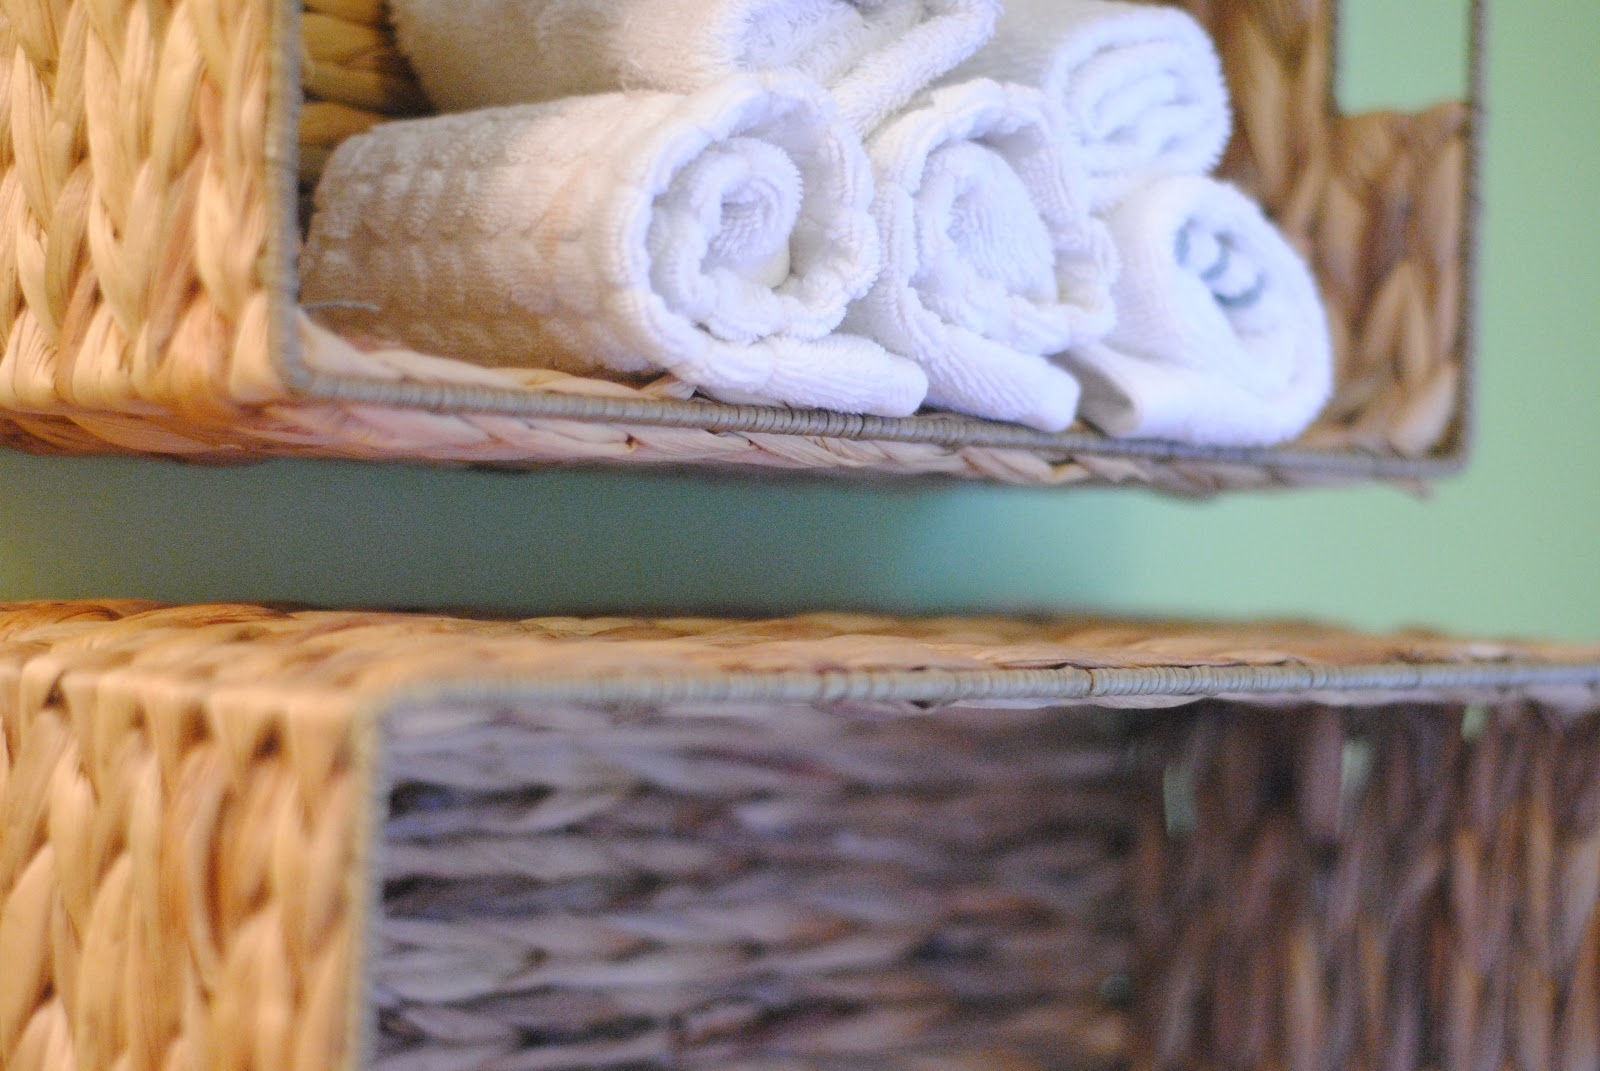 Bathroom Towel Storage diy bathroom towel storage in under 5 minutes | making lemonade